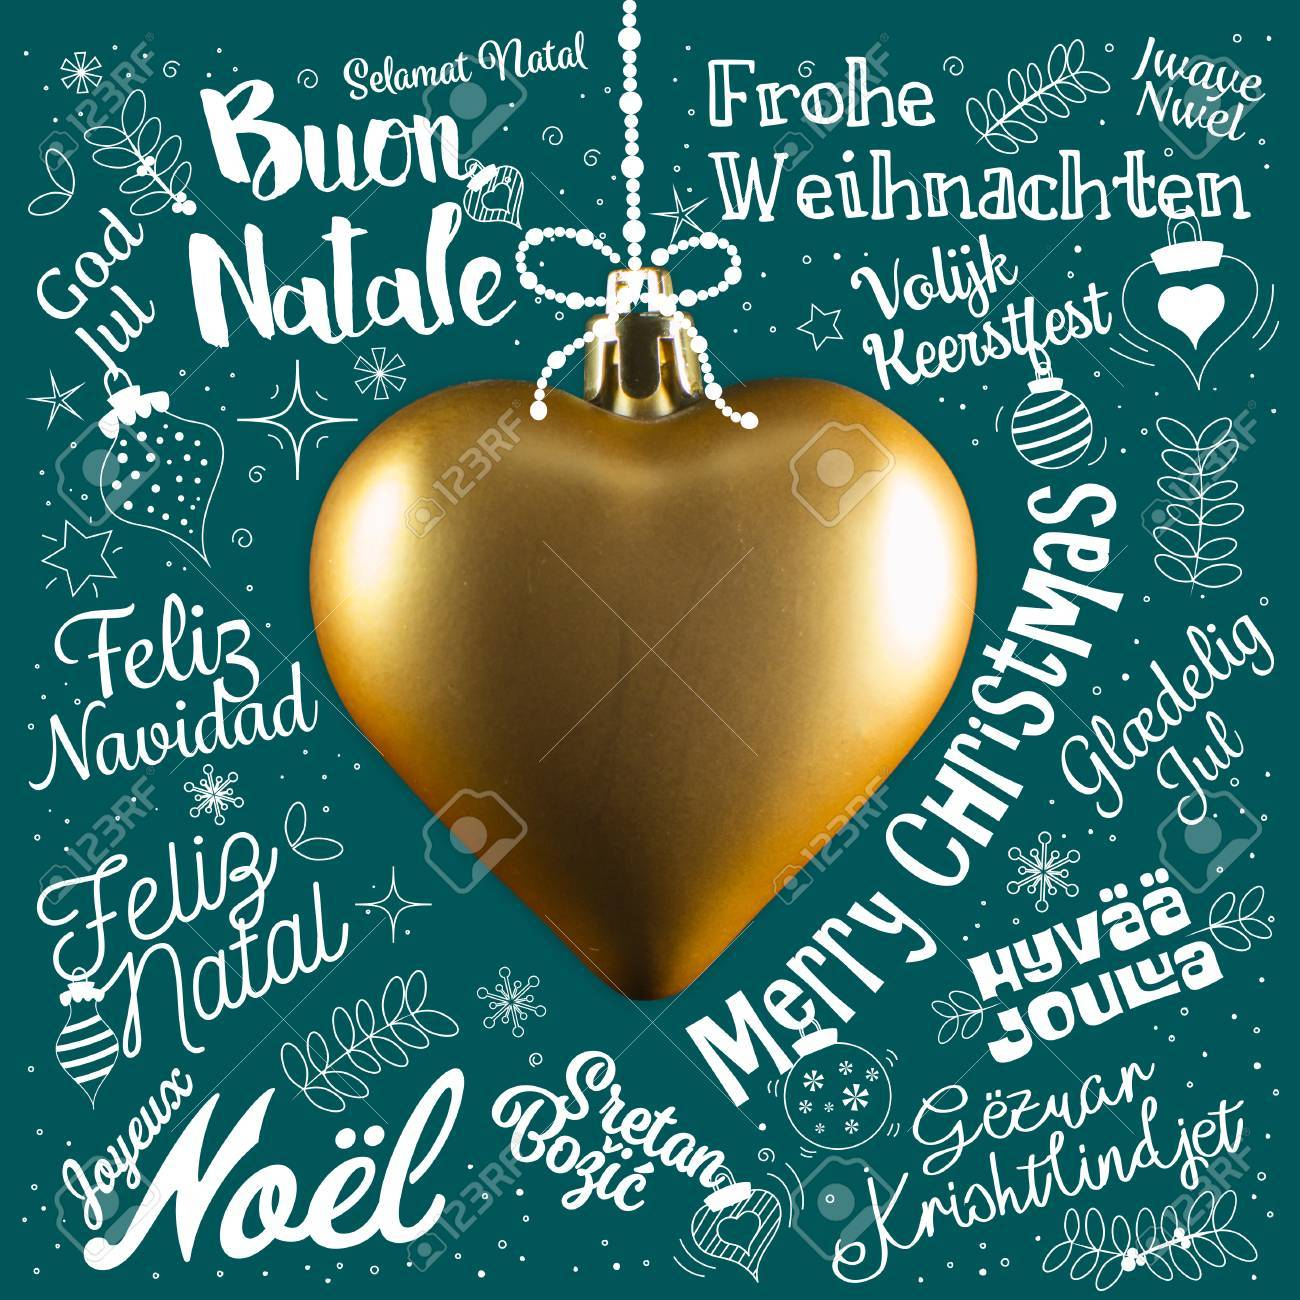 Merry Christmas In Different Languages.Merry Christmas Greetings Card From World In Different Languages